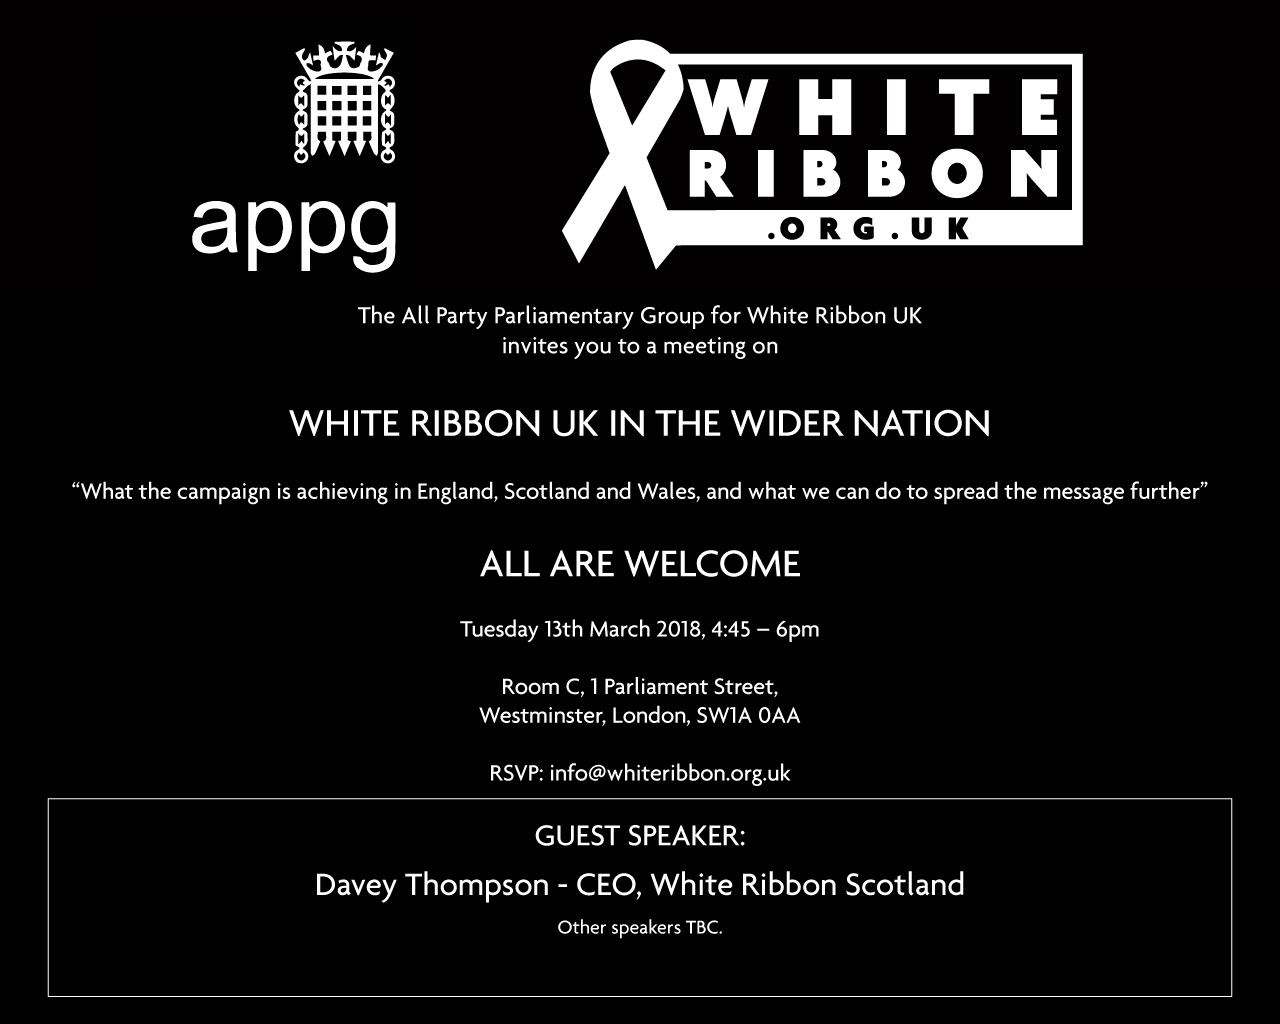 APPG Invite March 2018.png